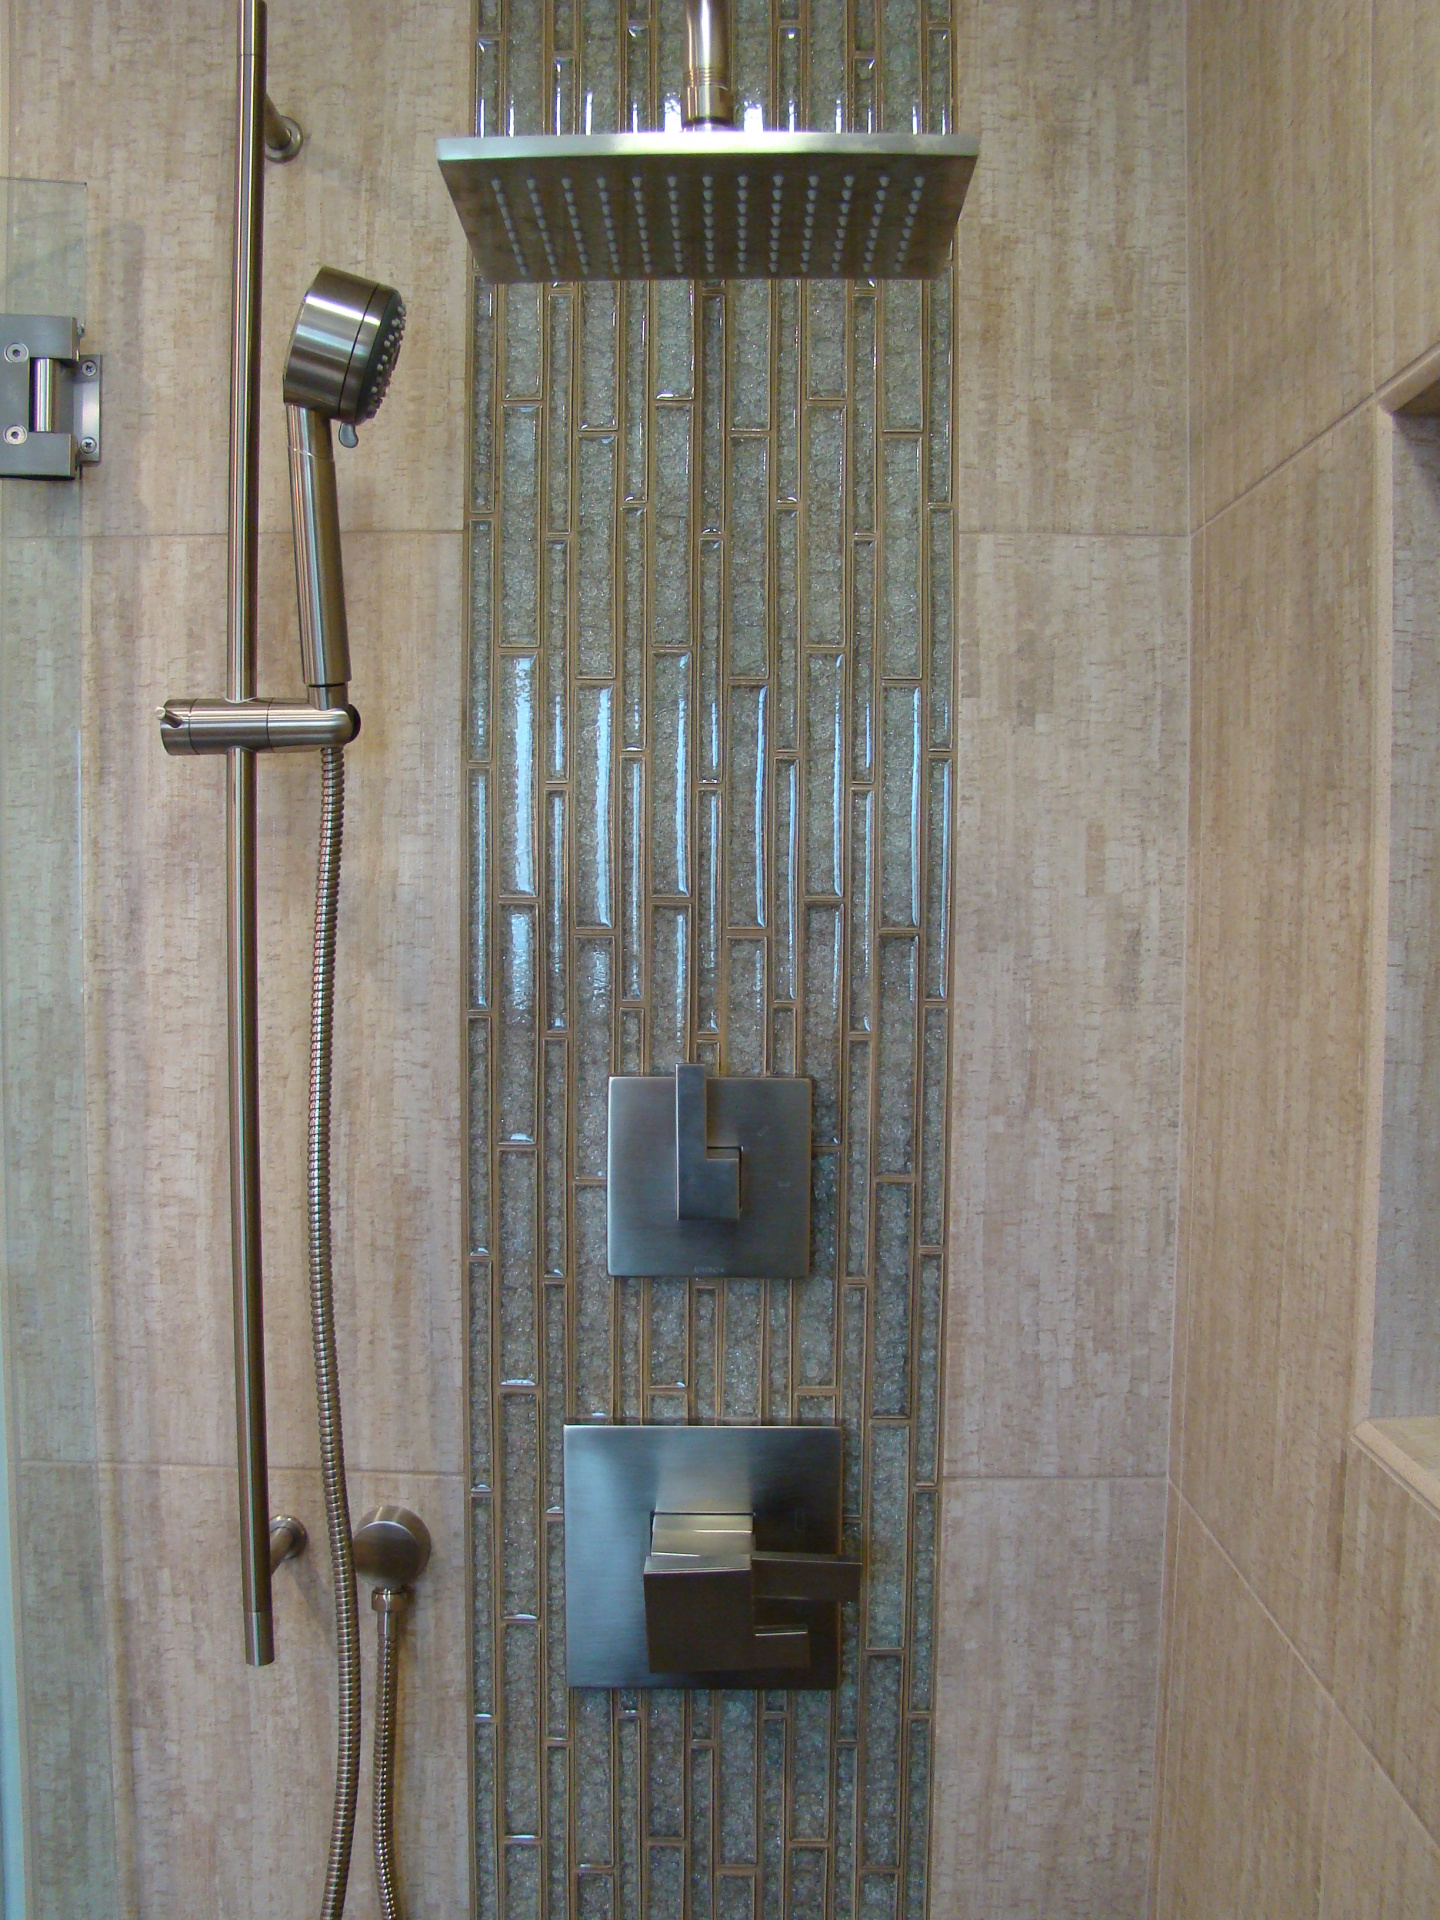 Fiorito Interior Design, interior design, remodel, bathroom, tropical, shower, pebble shower pan, crackle glass mosaic, modern shower head